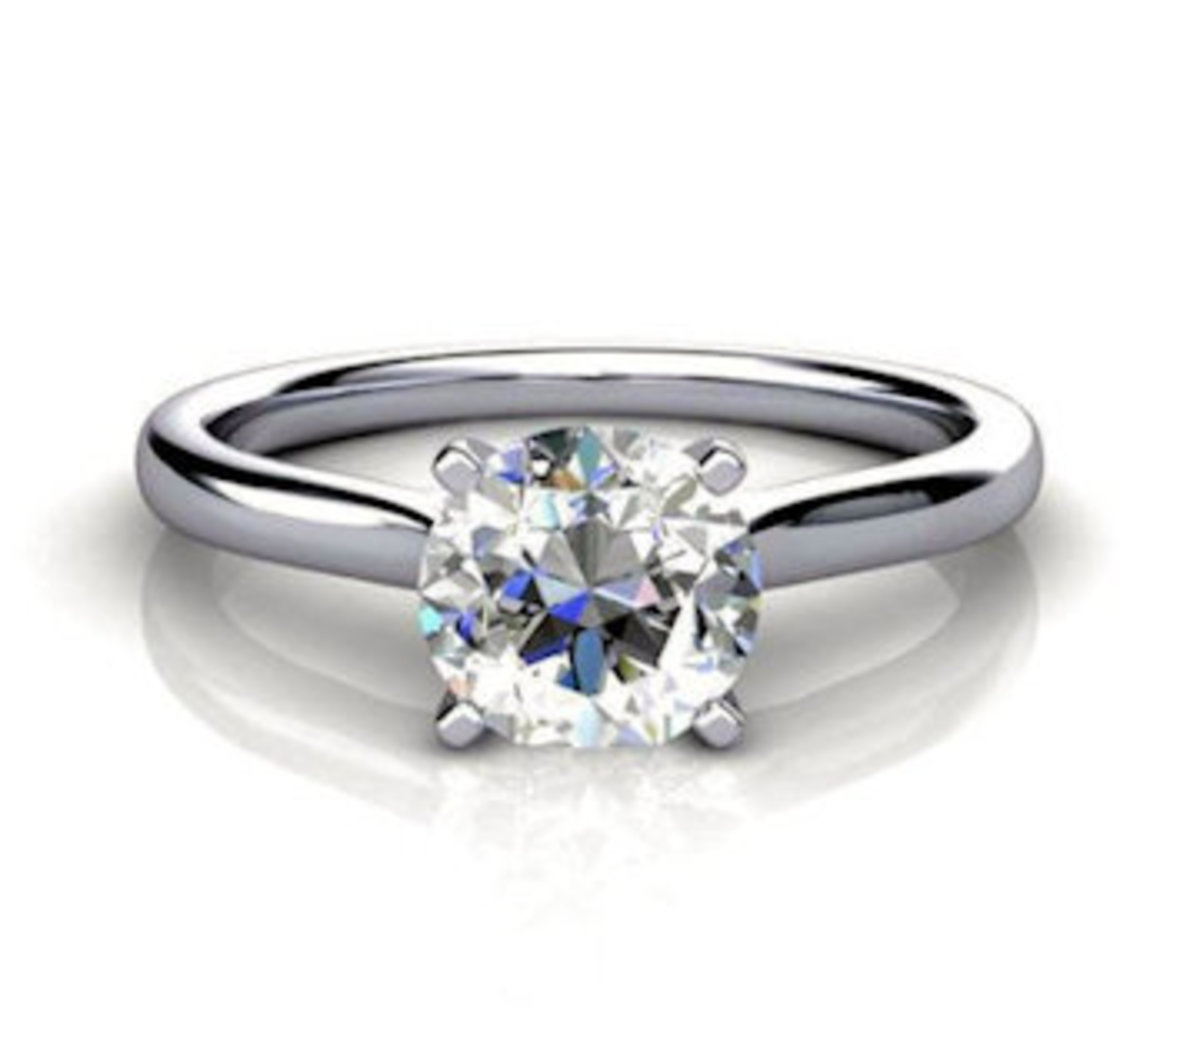 A beautiful 1.5 ct. diamond solitary ring.